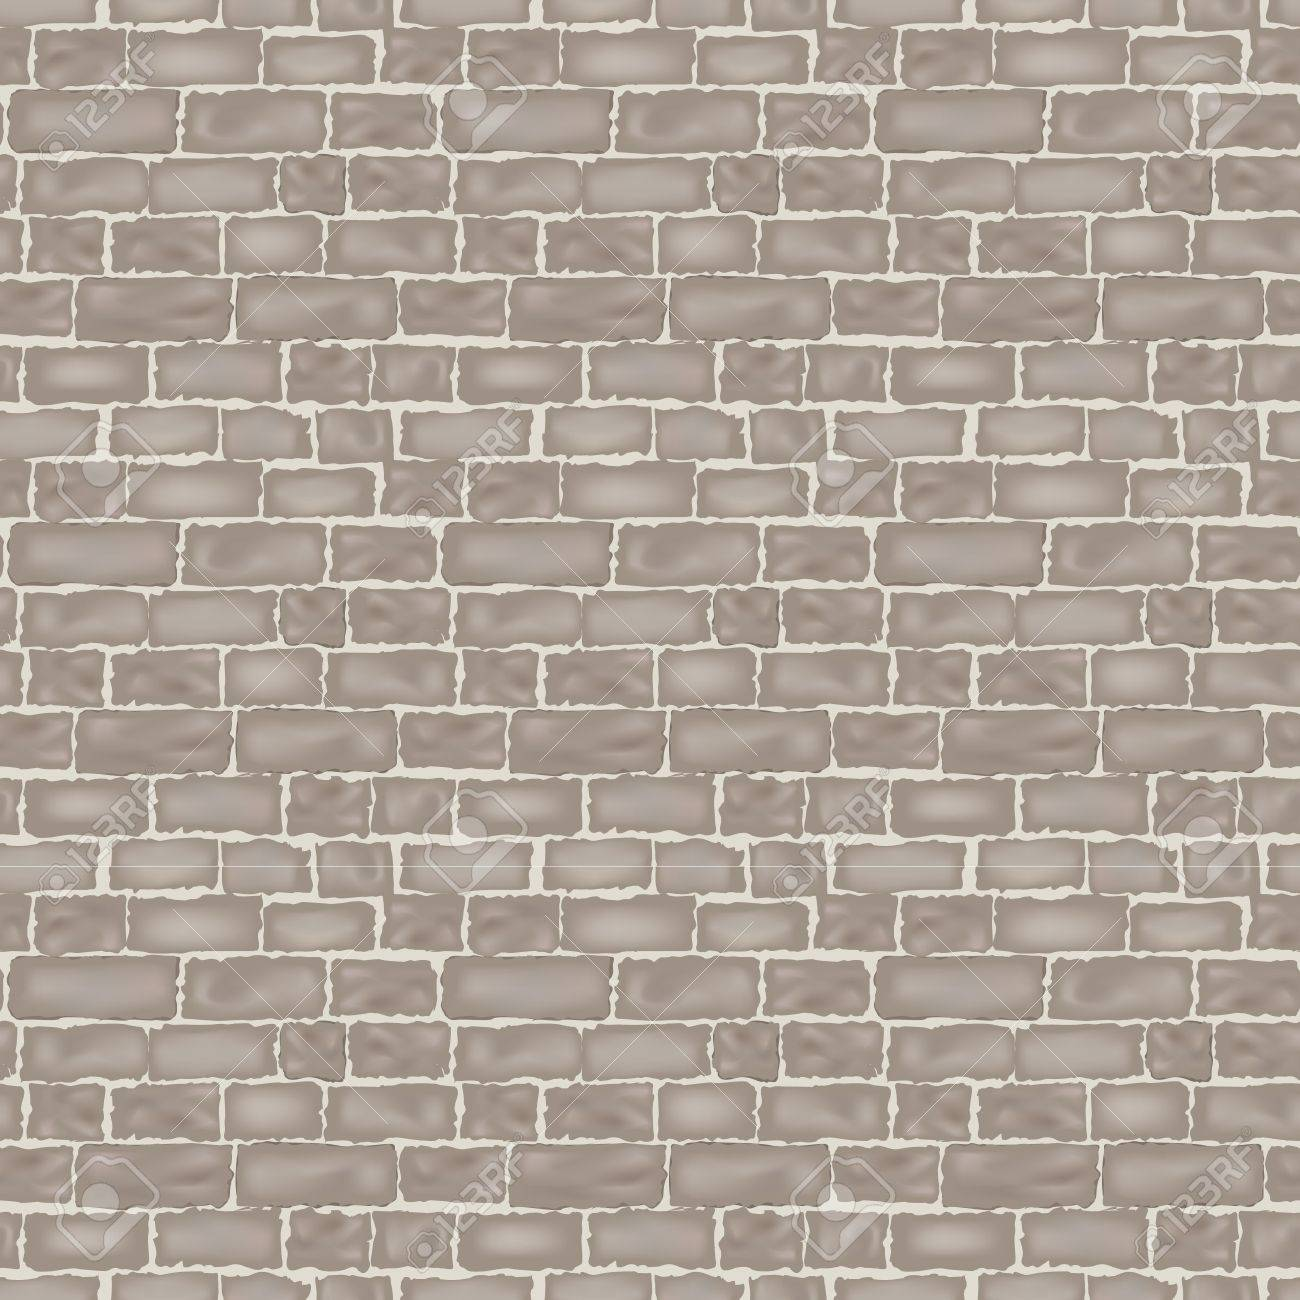 Brick Wall Texture Seamless Vector Background Royalty Free